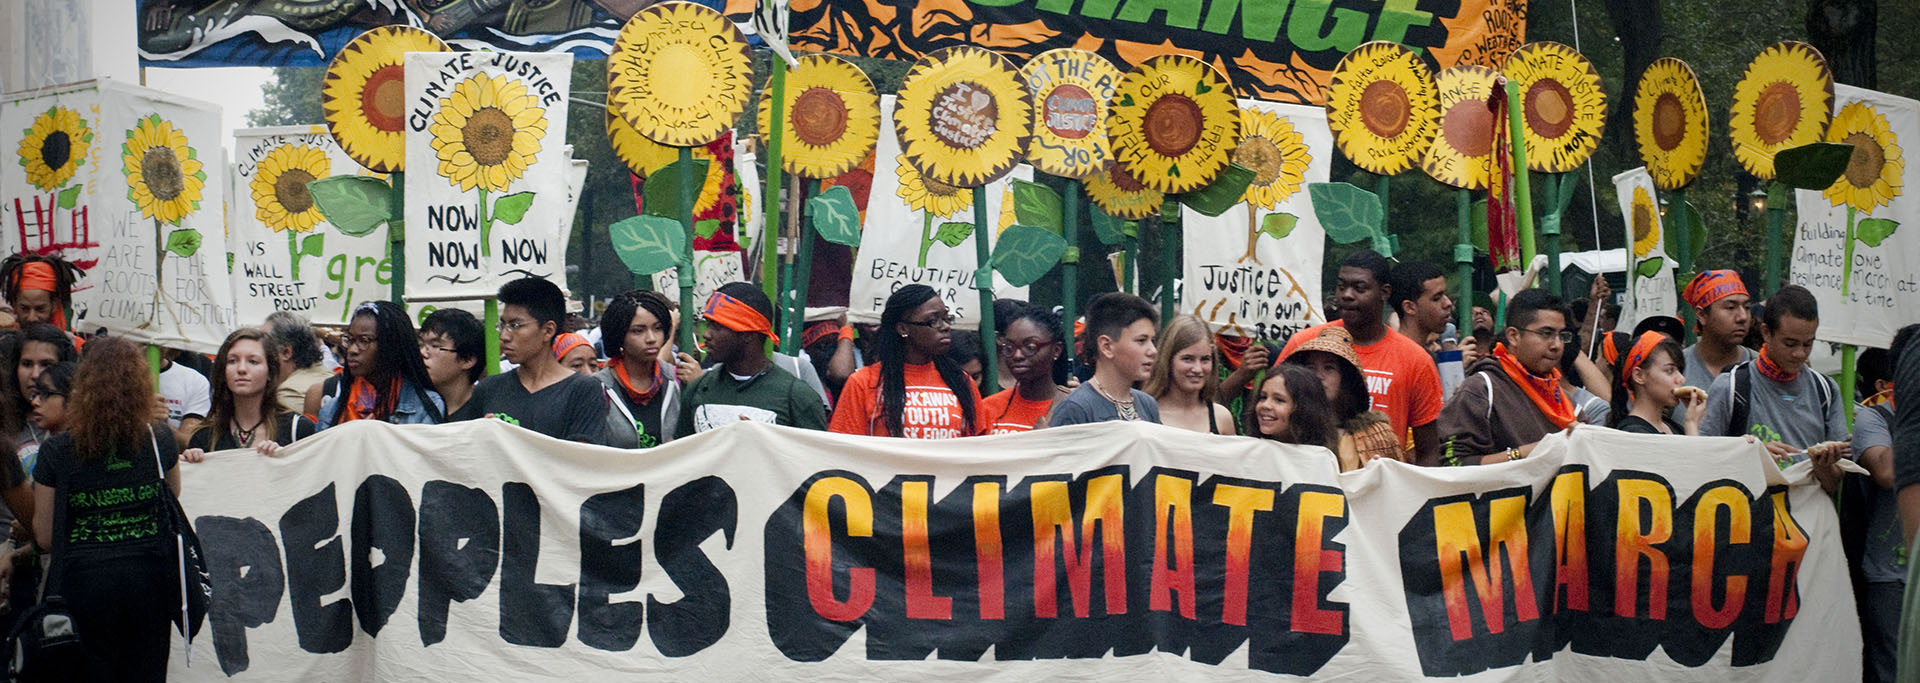 Participants at the start of the People's Climate March in New York, USA, on 21 September 2014.   Held on the Sunday before the UN Climate Summit in September 2014, the series of climate marches across the world was the biggest demonstration on climate change in history. Together, the participants at the marches – among them young people, veteran activists, politicians, scientists, religious leaders and small island representatives – called on the leaders attending the Summit to take urgent steps to actively address climate change. Elders Mary Robinson (who also serves as the UN Secretary-General's Special Envoy on Climate Change) and Gro Harlem Brundtland attended the Climate March in New York to lend their voices for action #NowNotTomorrow.  Credit: Neville Elder/The Elders